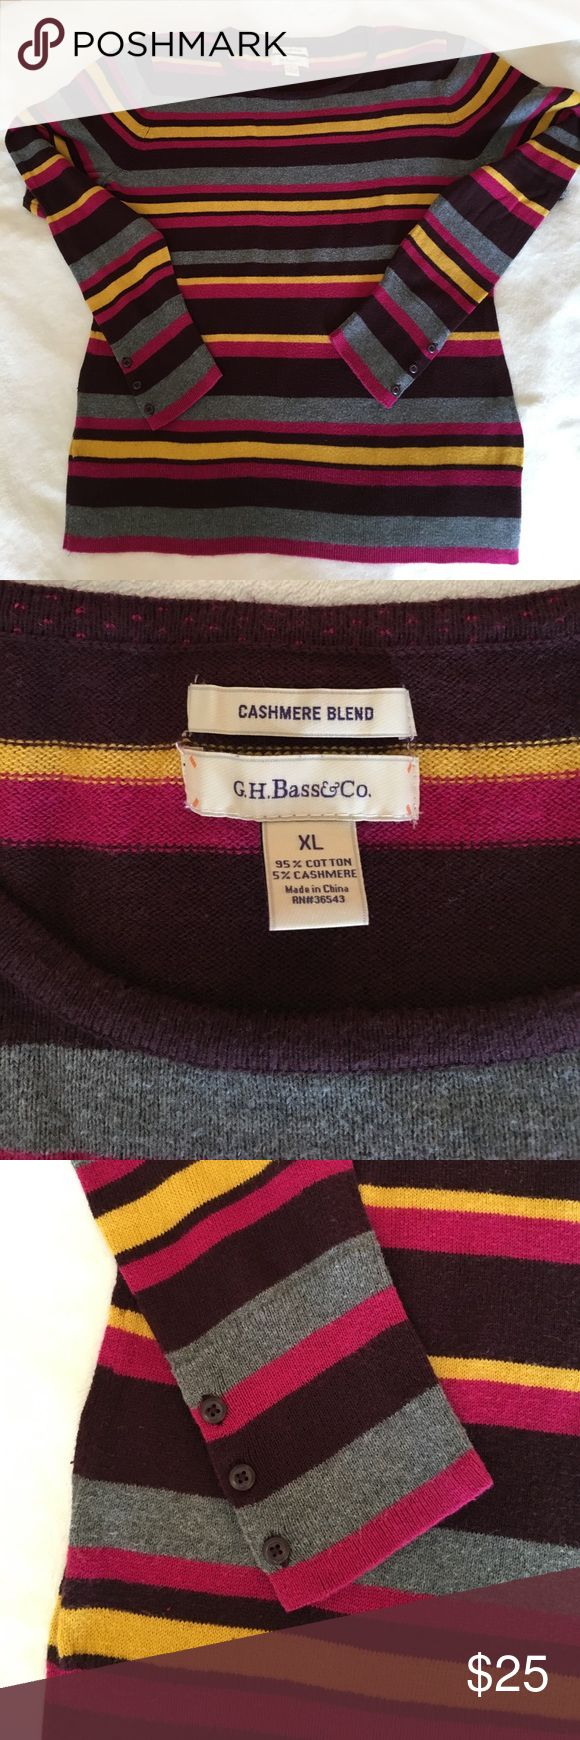 "Bass cashmere blend sweater Striped 5% cashmere 95% cotton blend sweater in XL from GH Bass. Worn 2-3 times. Length is 25"" from shoulder. Gray, fuschia, wine and yellow variegated stripes Bass Sweaters Crew & Scoop Necks"